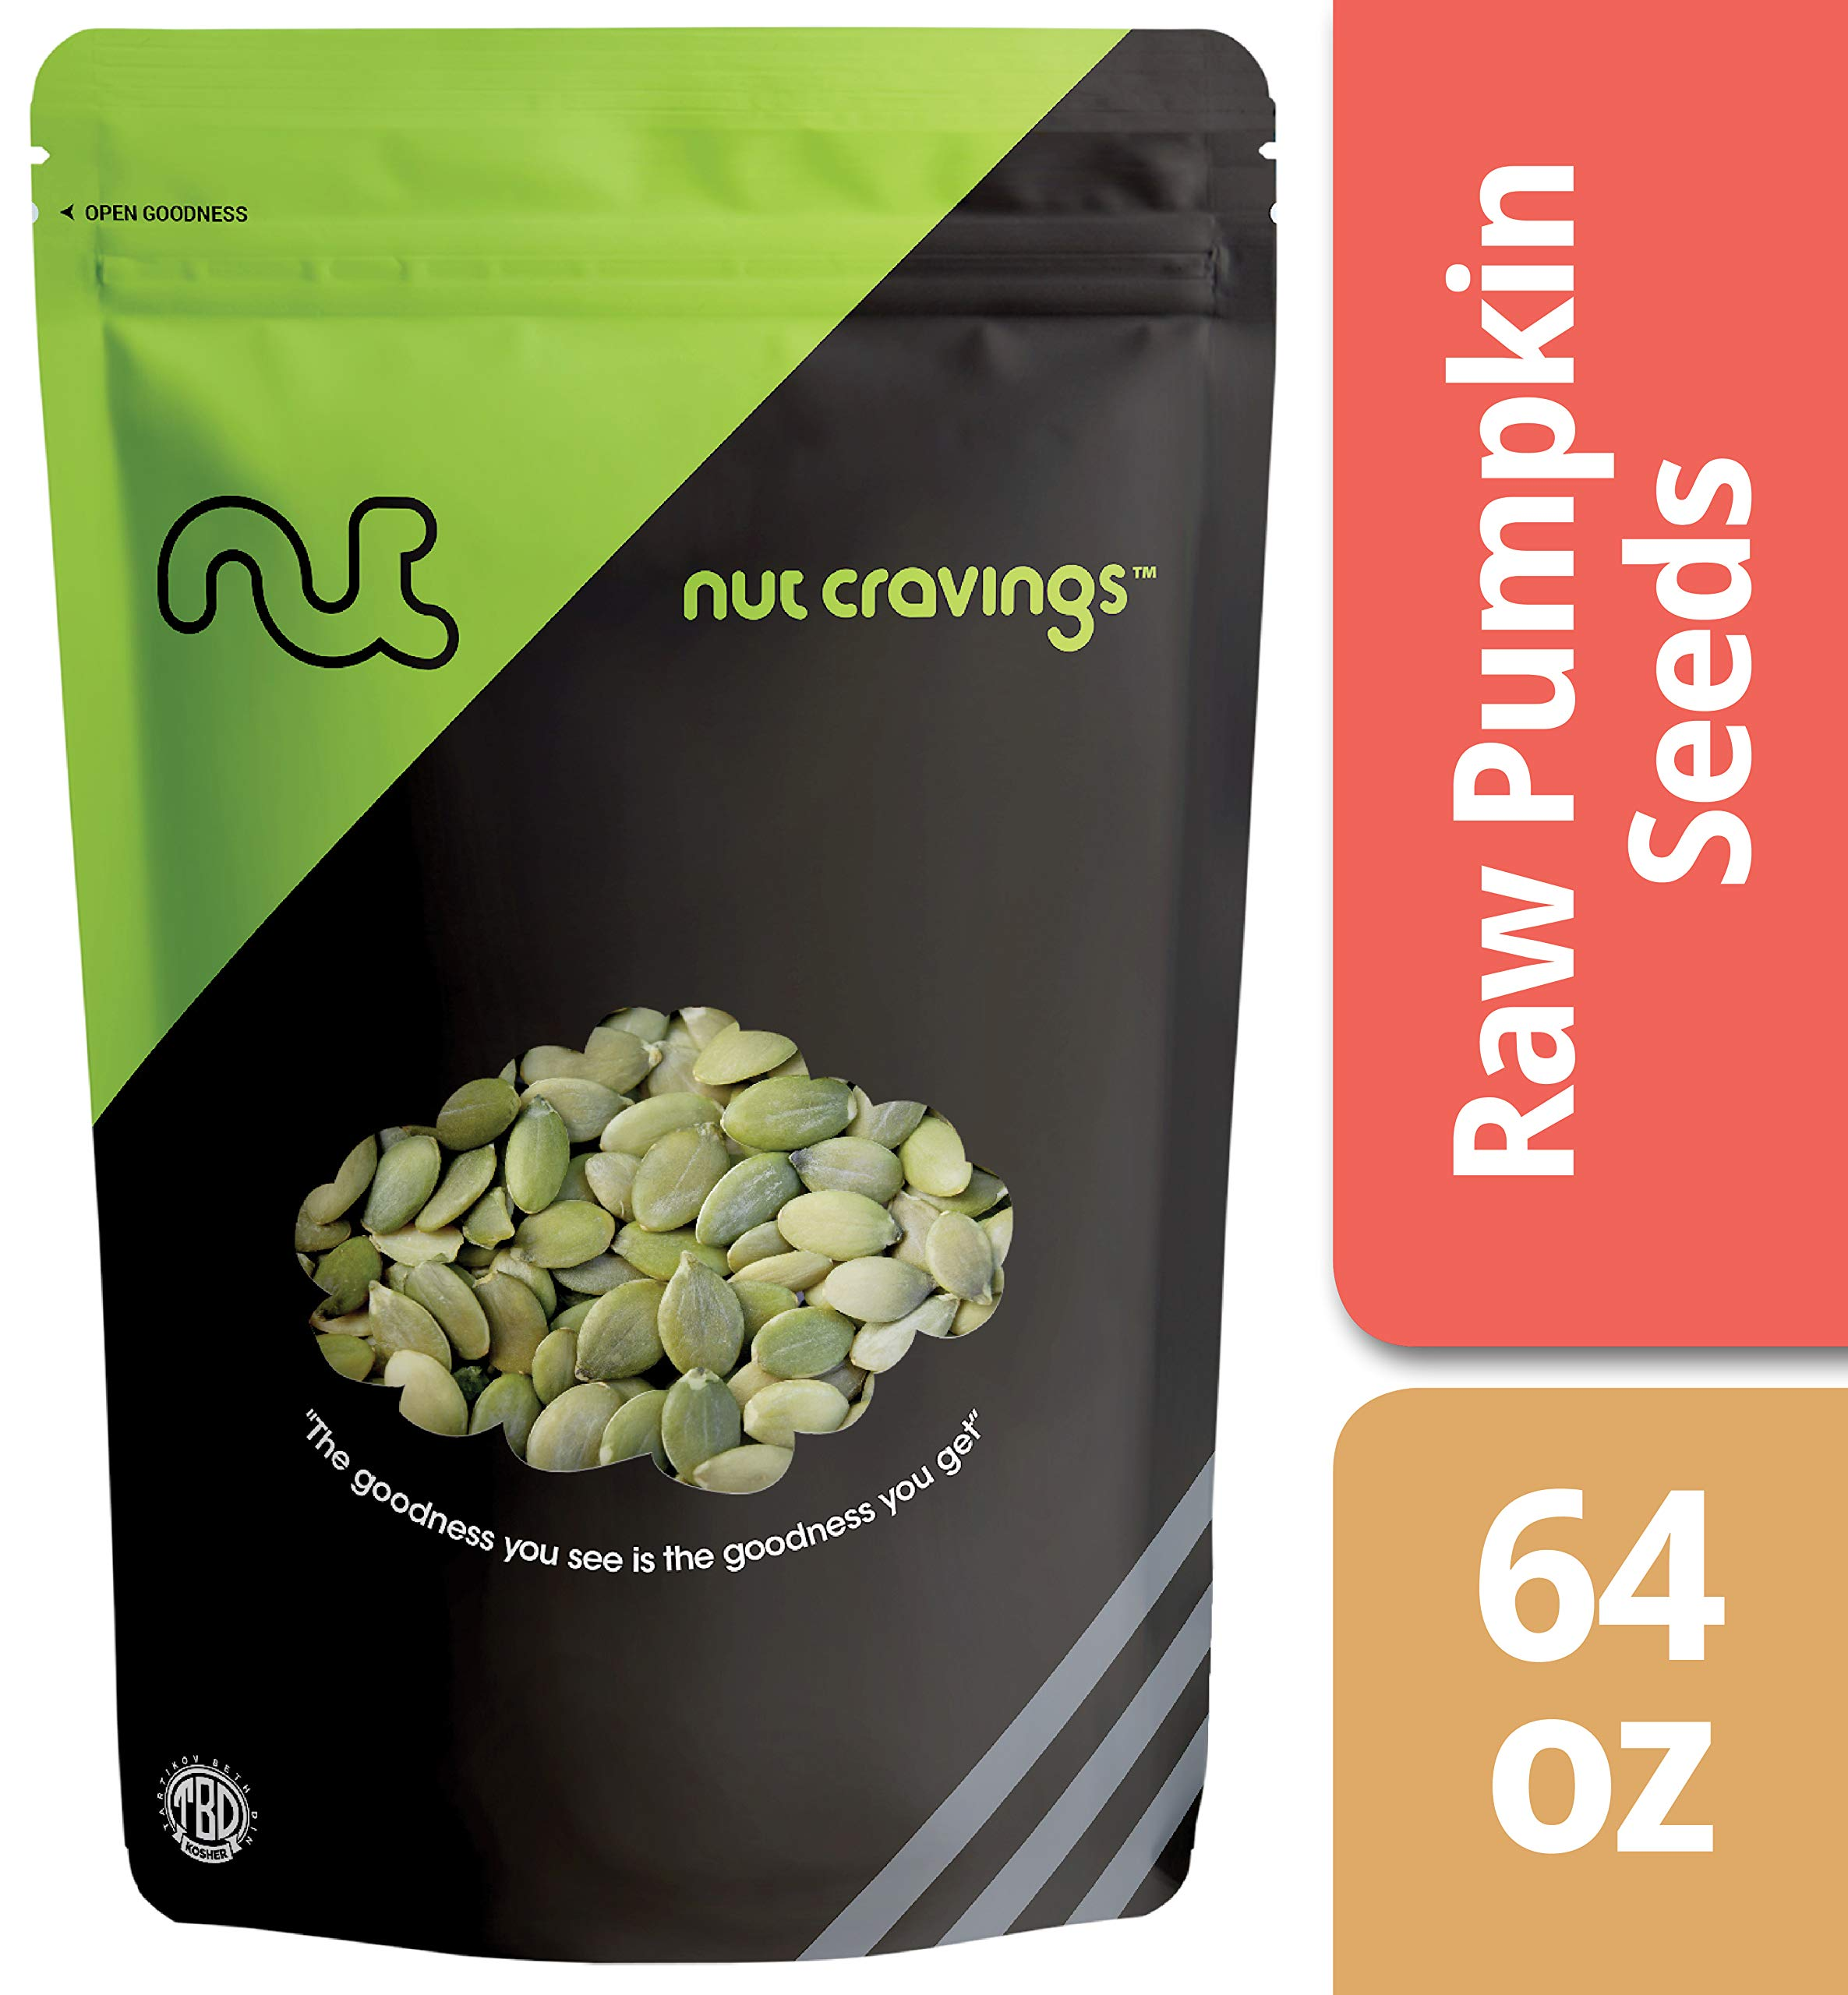 Nut Cravings - Raw Organic Pumpkin Seeds (4 Pounds) - Raw Pepitas With No Shell - 64 Ounce by Nut Cravings